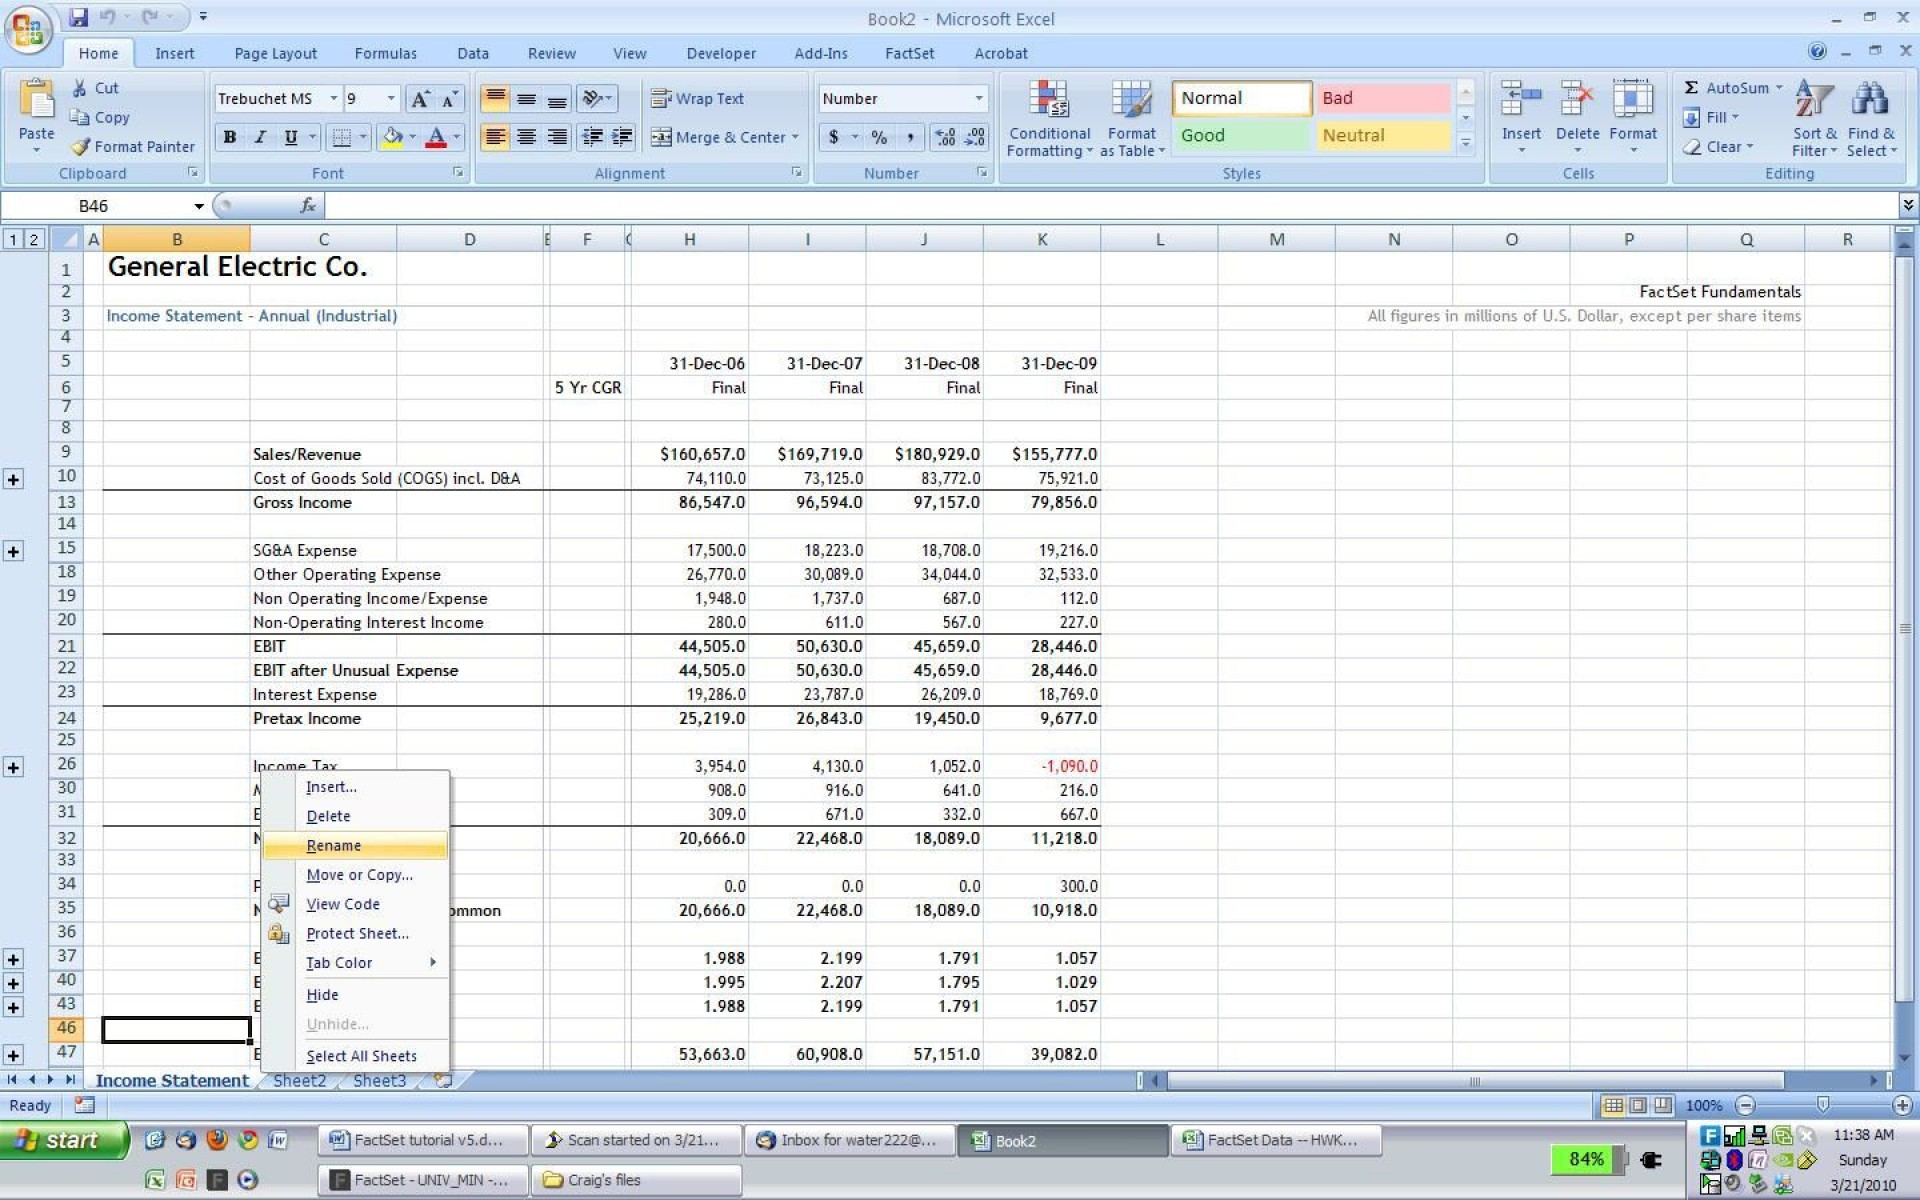 007 Singular Income Statement Format Excel Free Download Image  Monthly1920